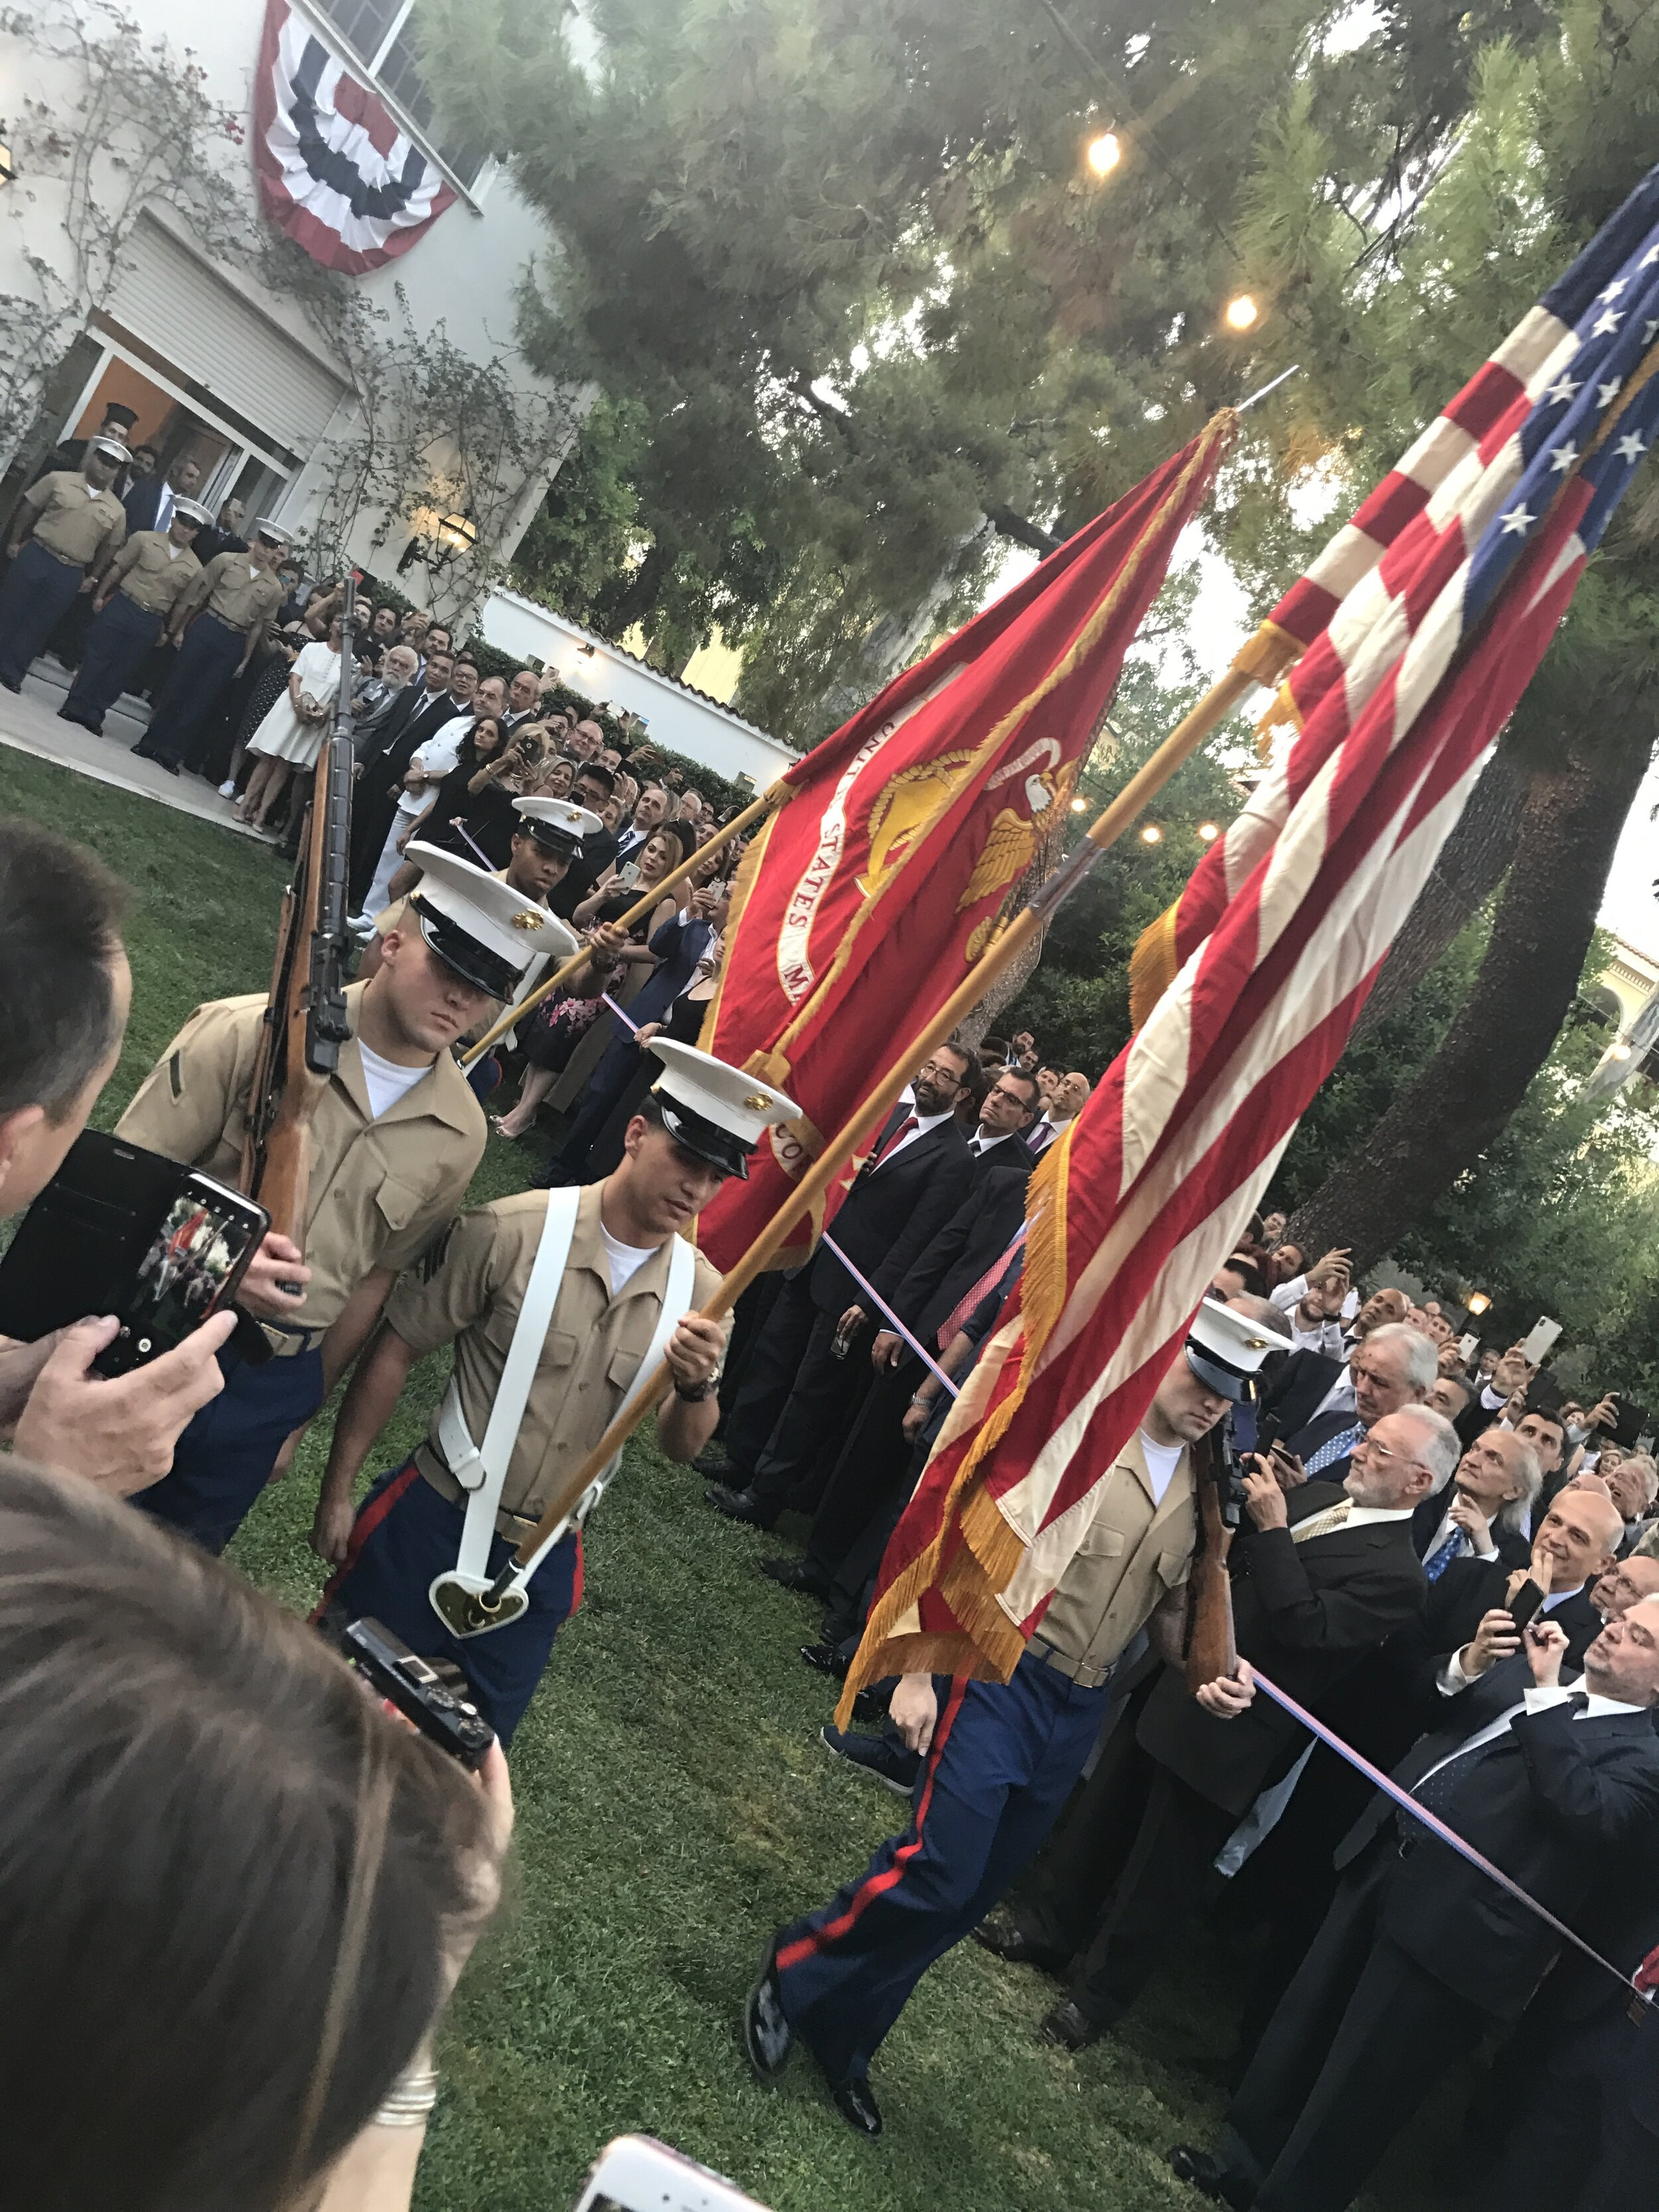 The Color Guard carrying the Colors at the 4th of July Reception at the U.S. Ambassador's Residence